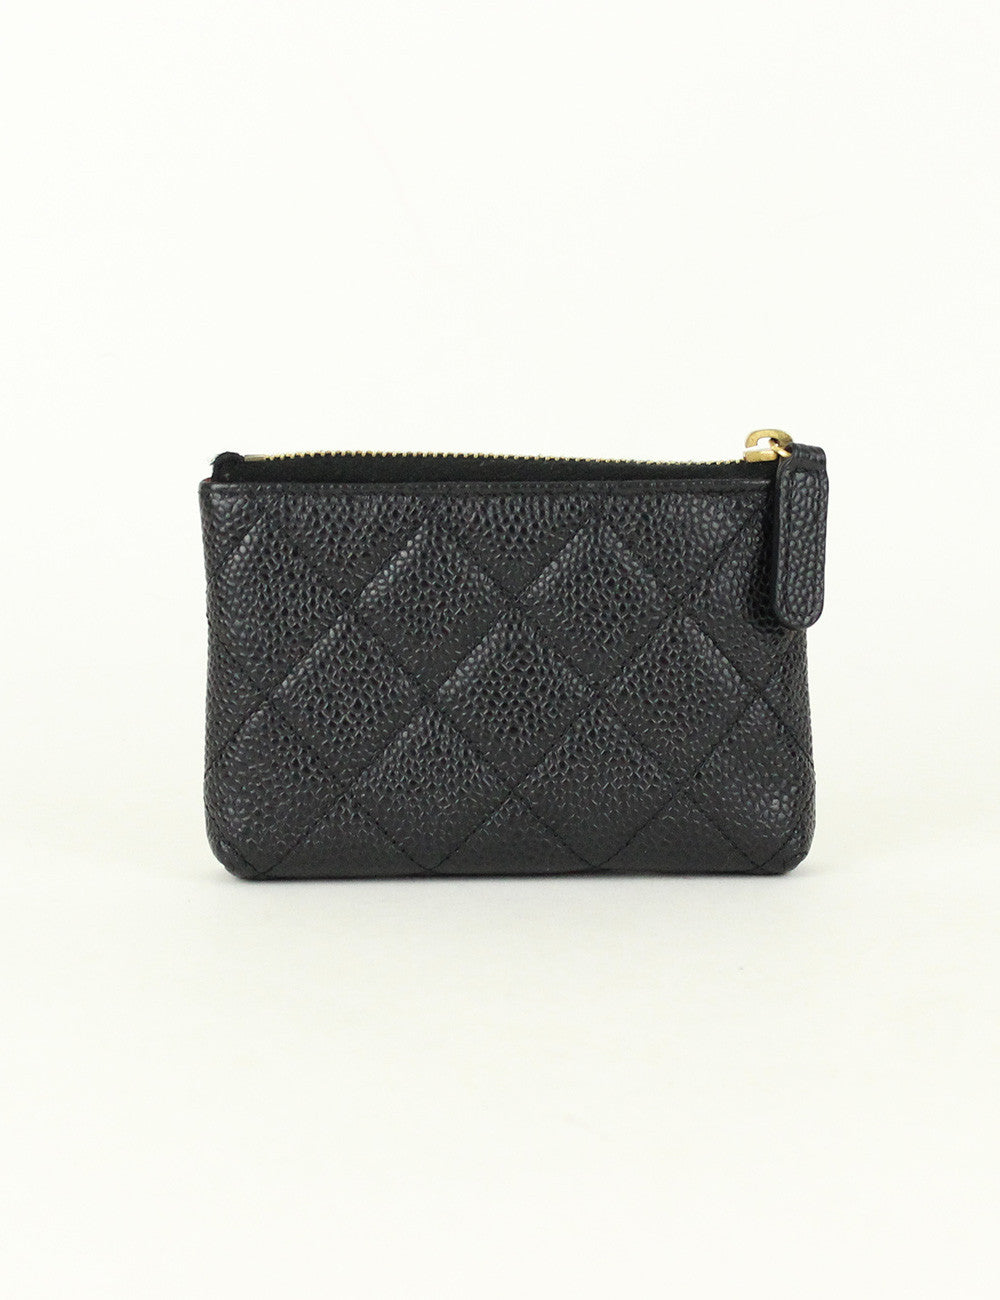 Chanel <br> Key and Change Holder